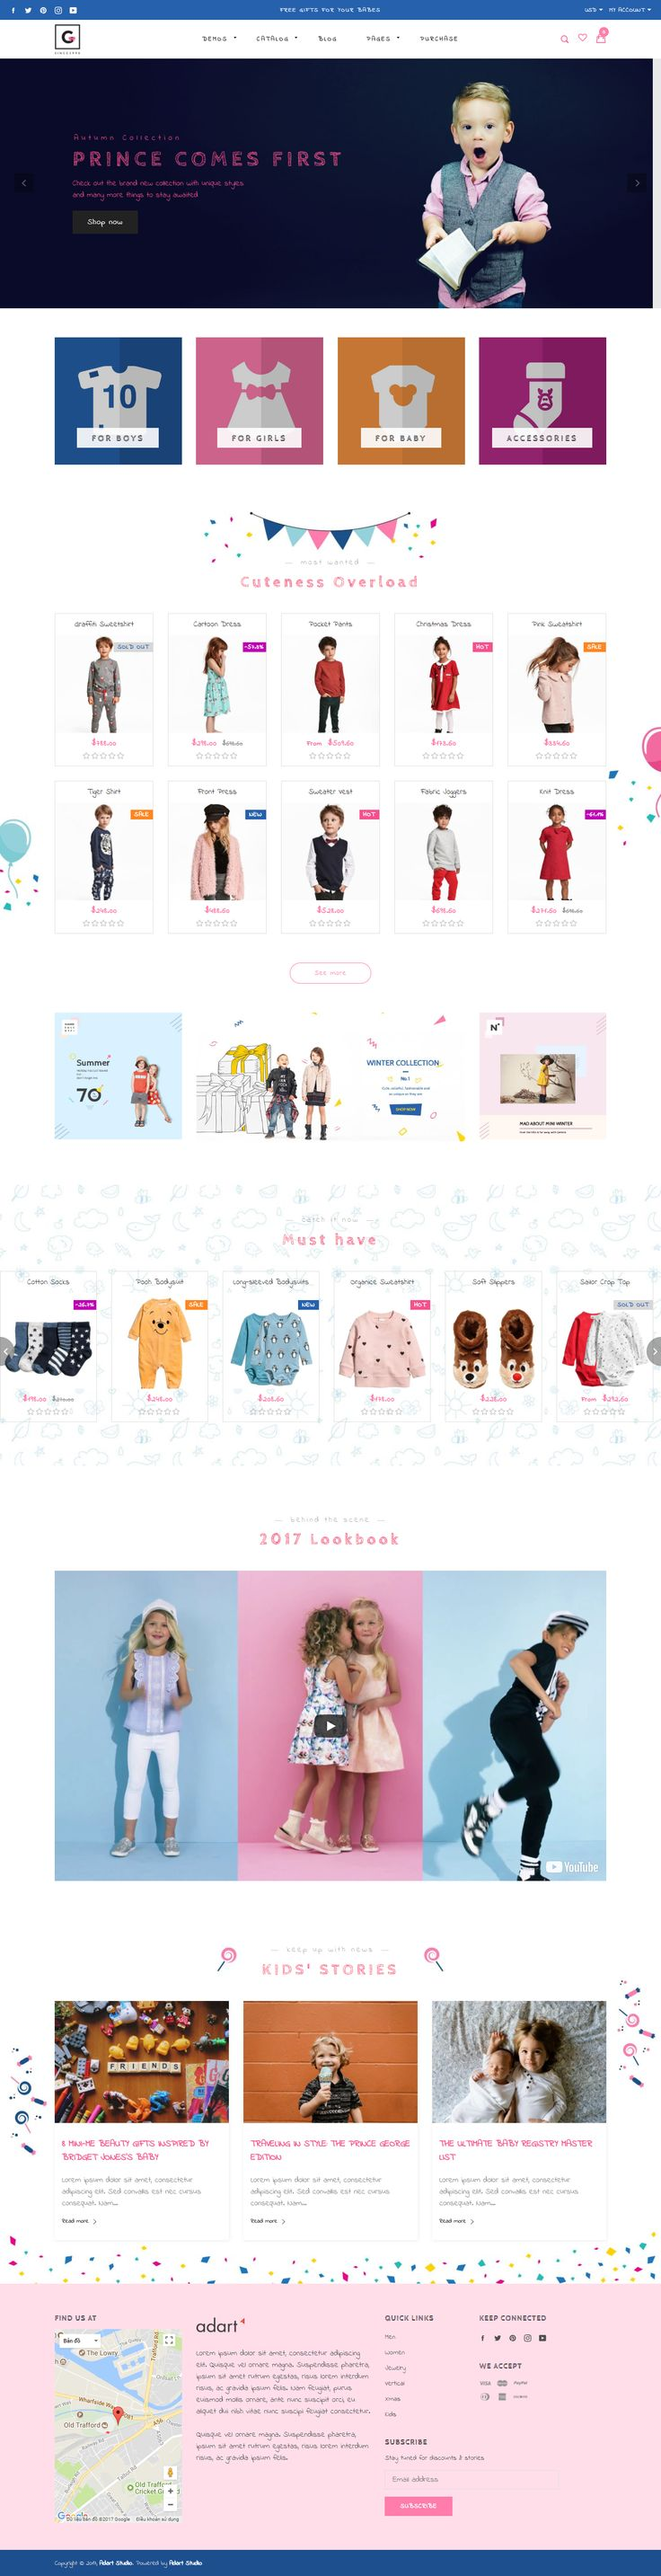 Best Ecommerce Website Design for Kids Store - Gemini Shopify theme #shopify #ecommerce #theme #template #webdesign #shopifystore #shopifythemes #ecommercewebsite #ecommercetheme #kids #kidstore #children #fashionstore #fashionstoredesign #onlineshop